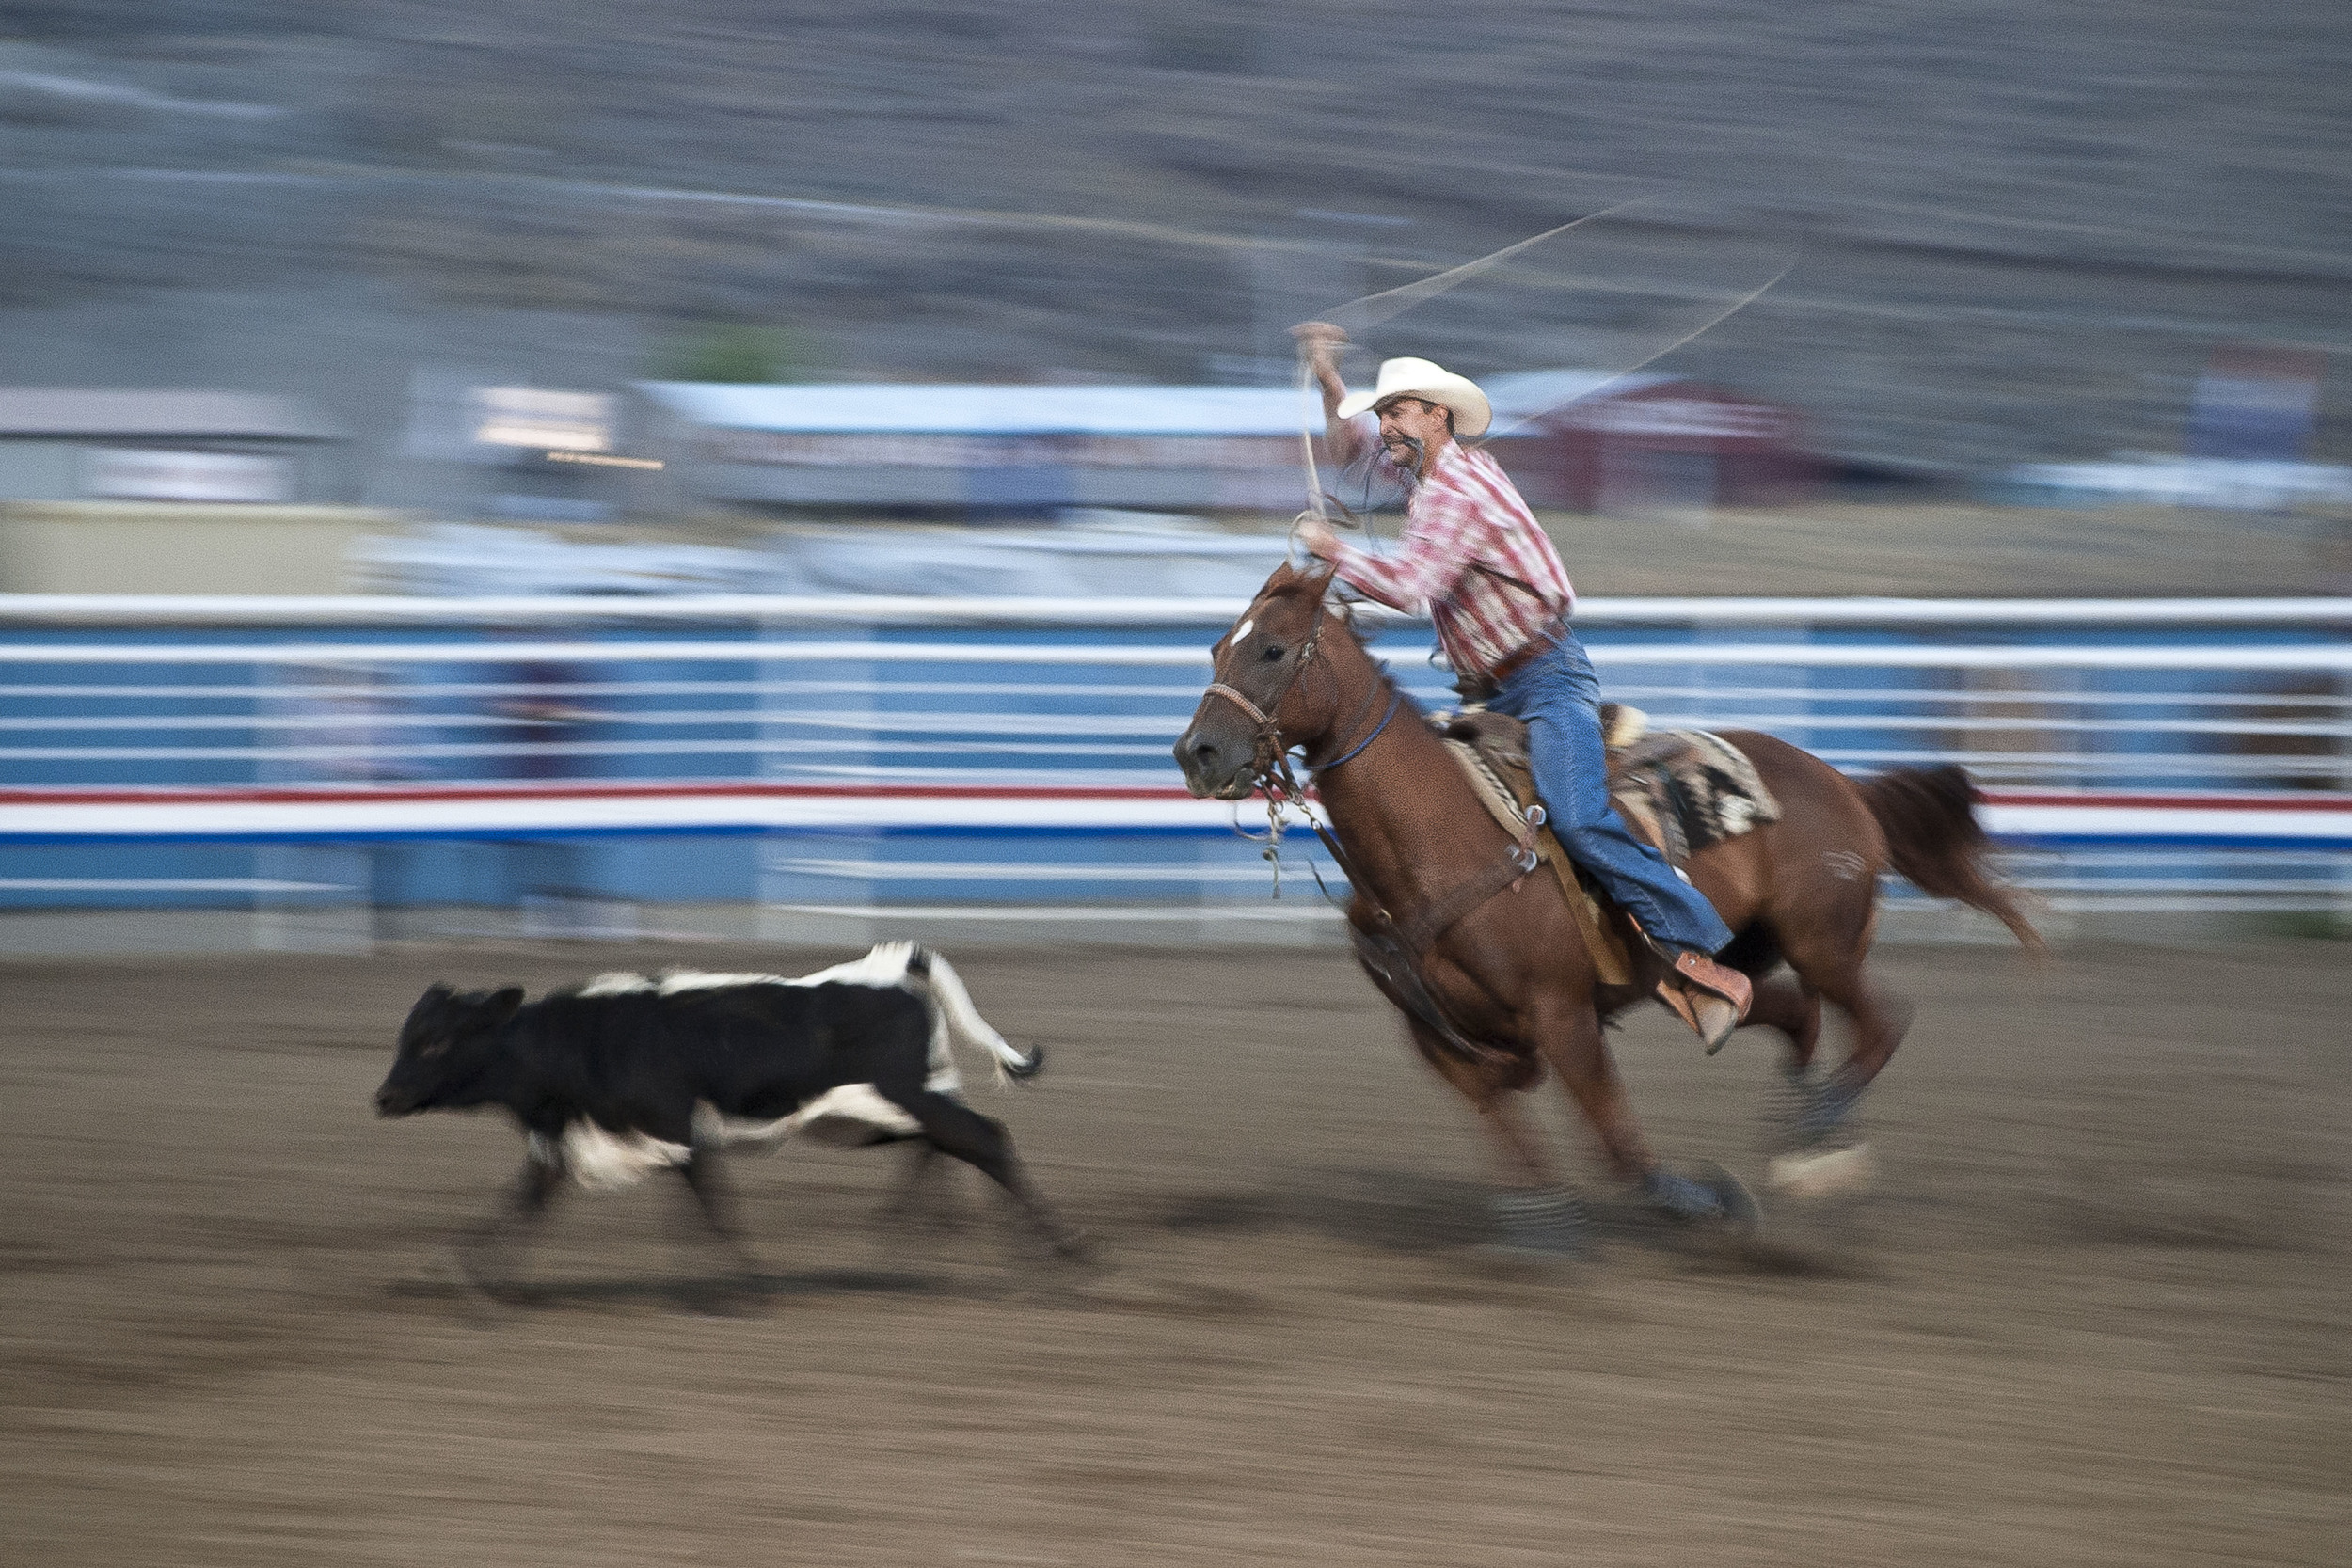 Roping at the Cody Rodeo in Cody, Wyoming.